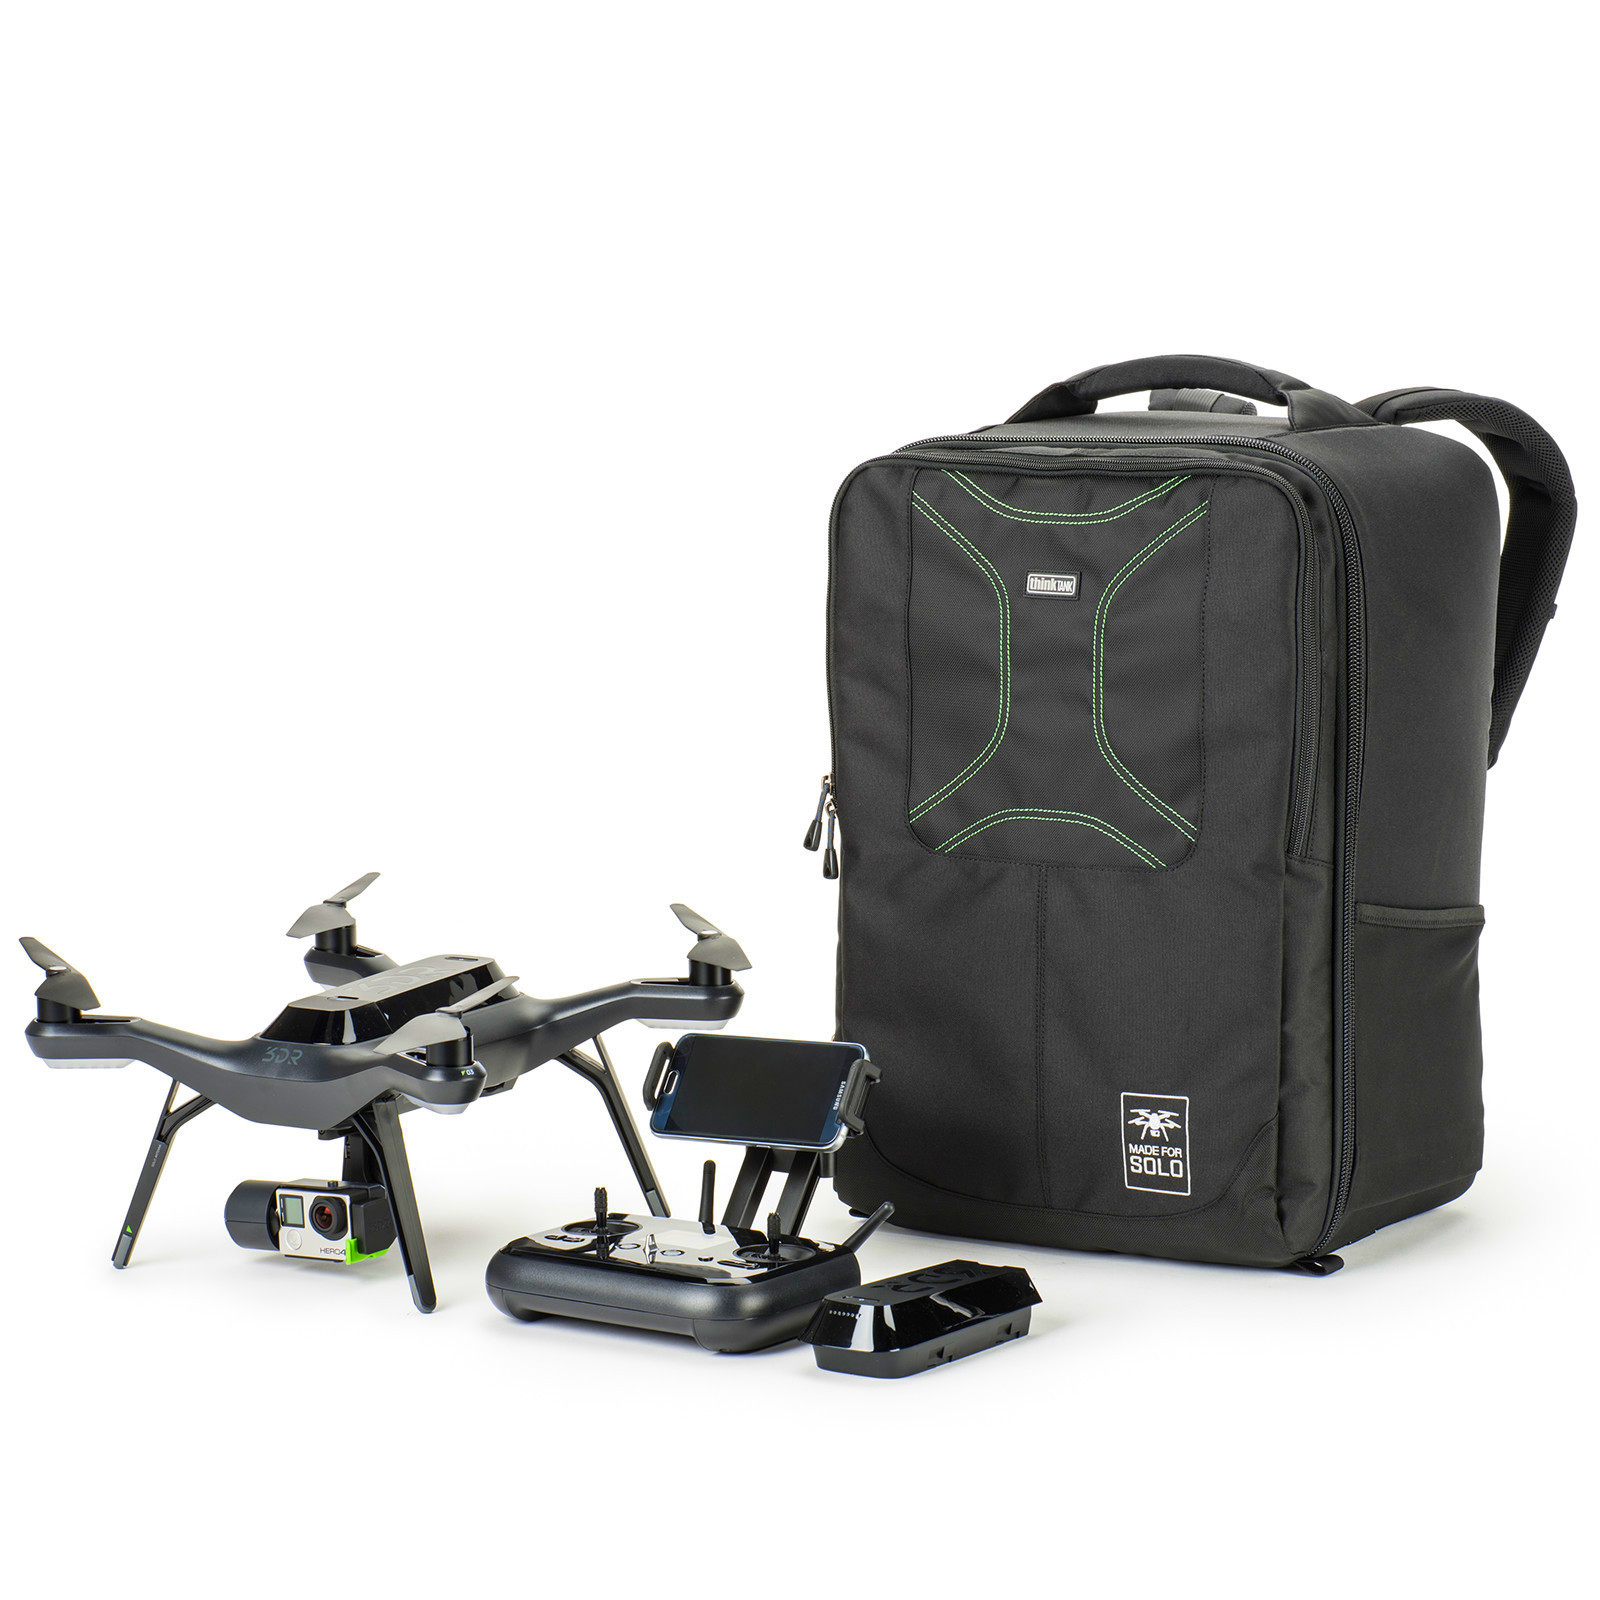 Think Tank Airport Helipak For 3dr Solo Drone And Airport